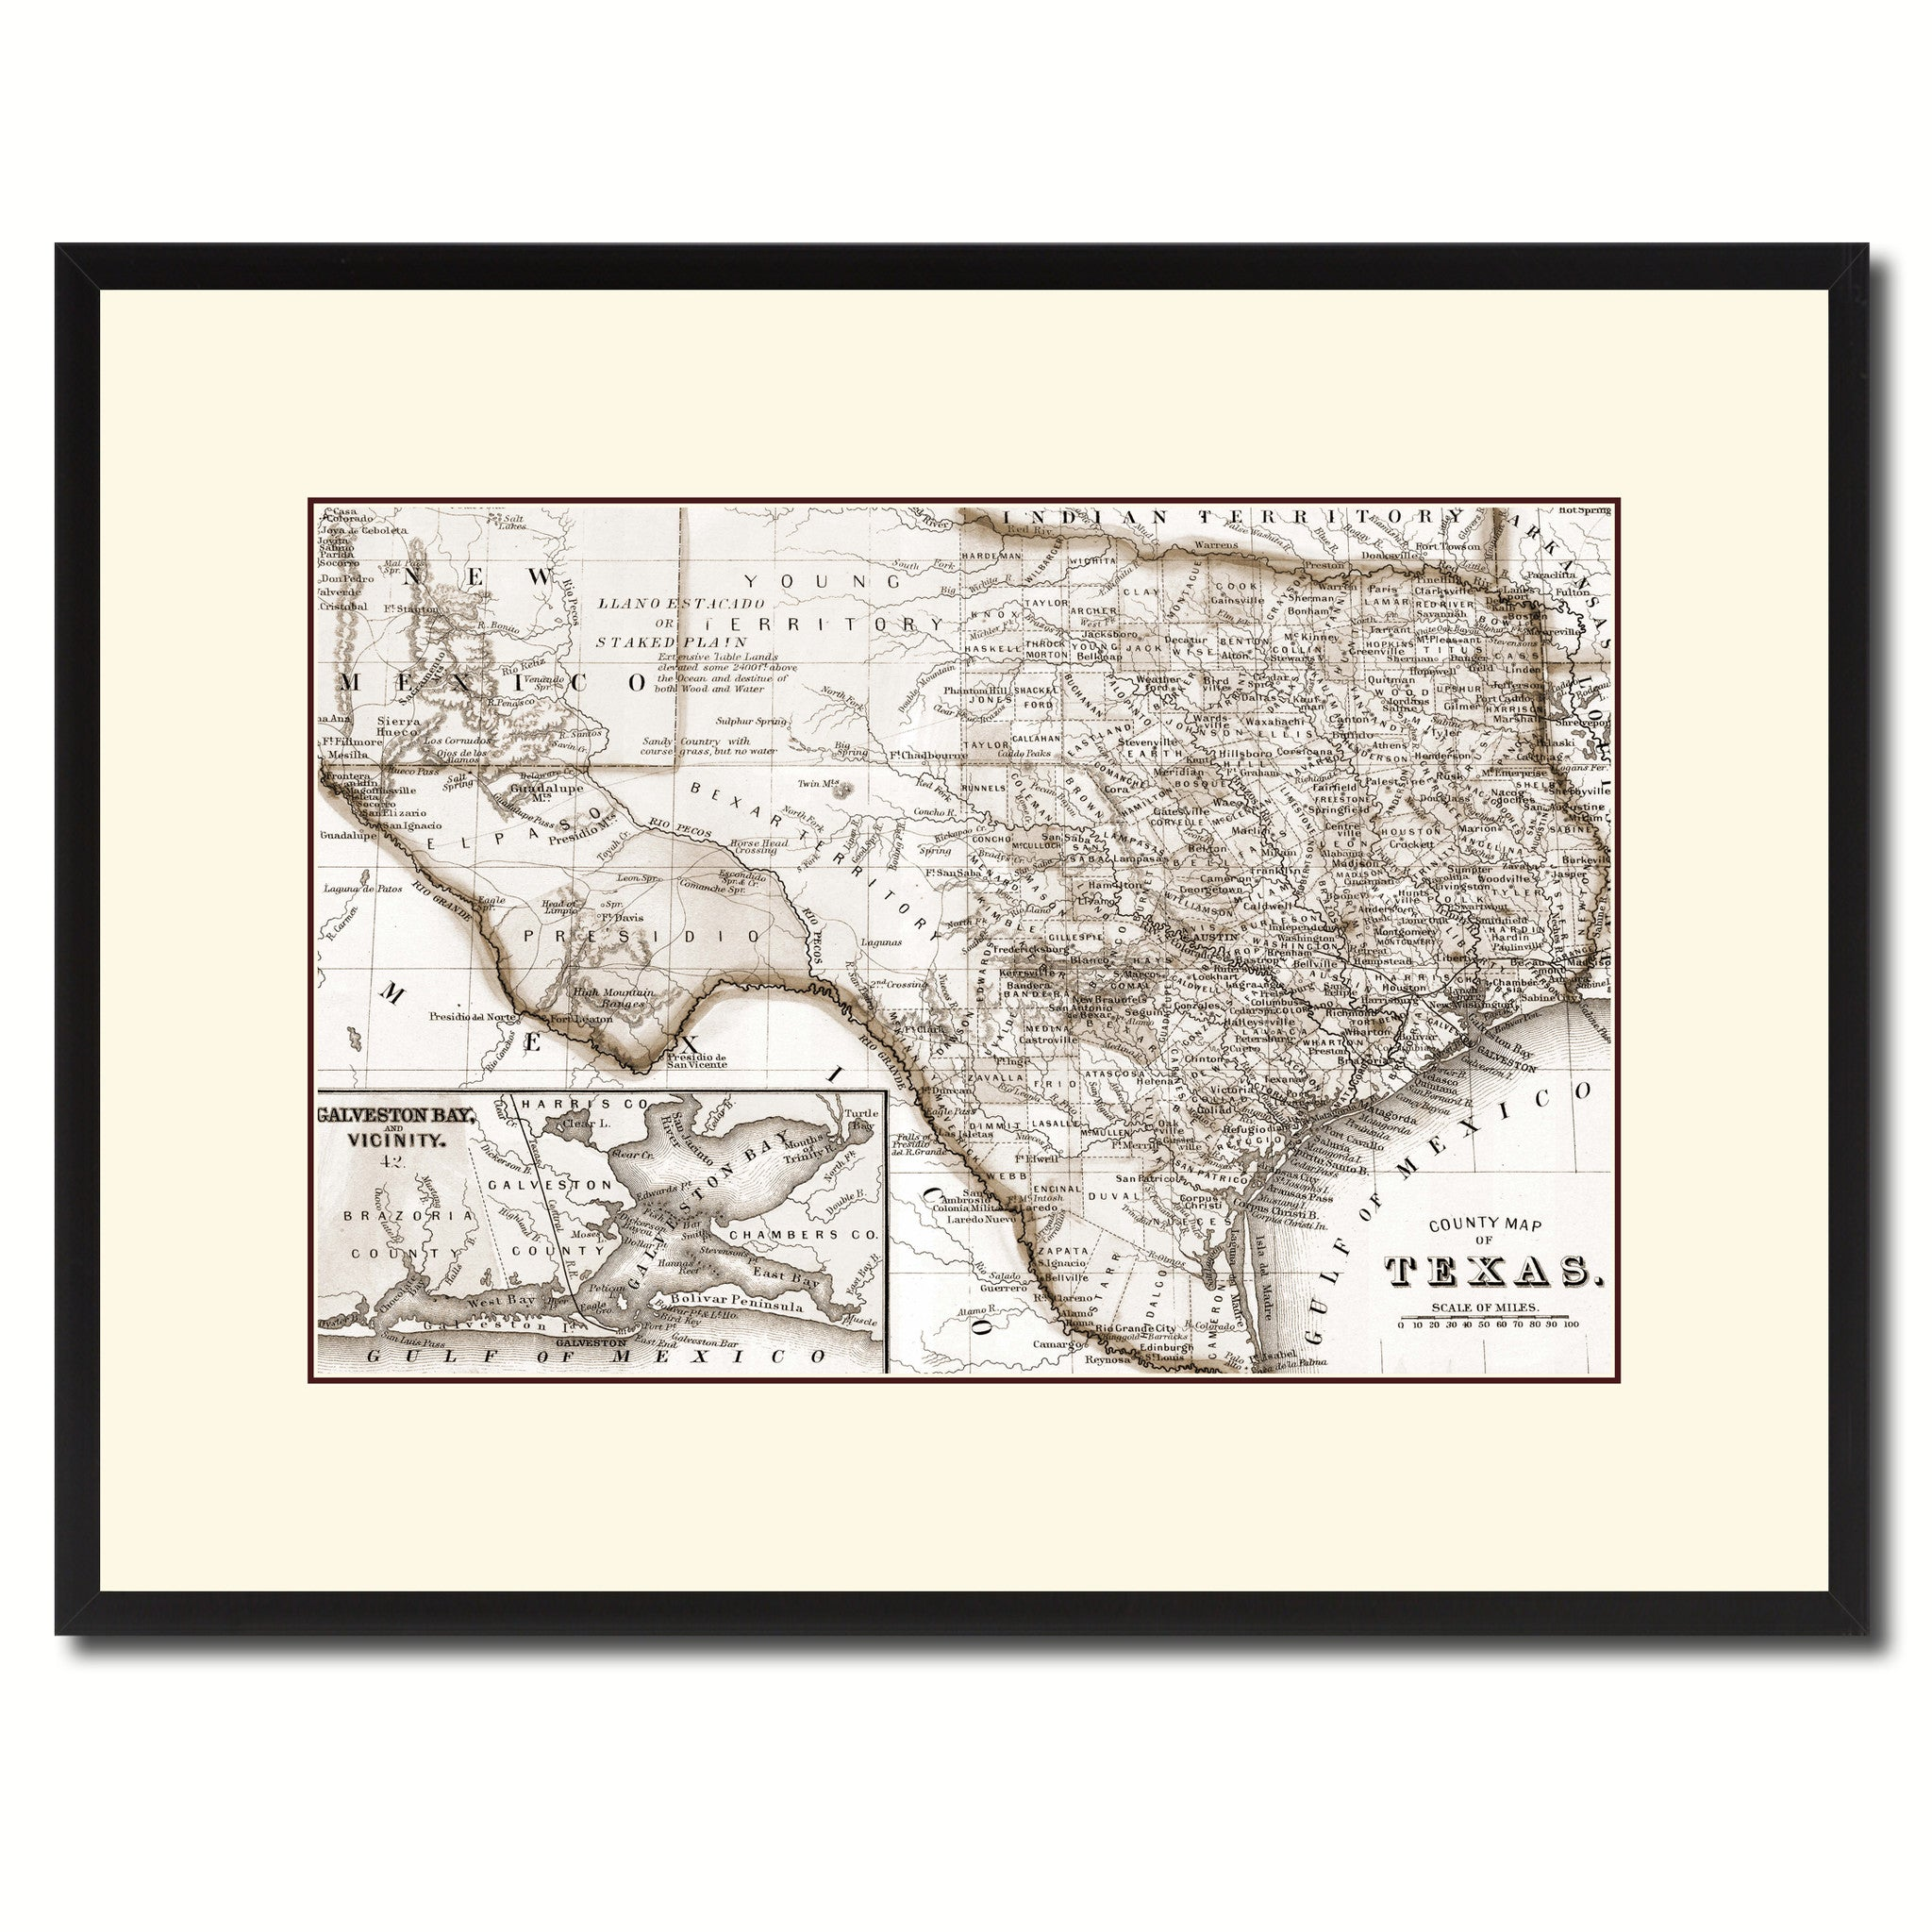 texas vintage sepia map canvas print picture frame gifts home decor wall art de ebay. Black Bedroom Furniture Sets. Home Design Ideas